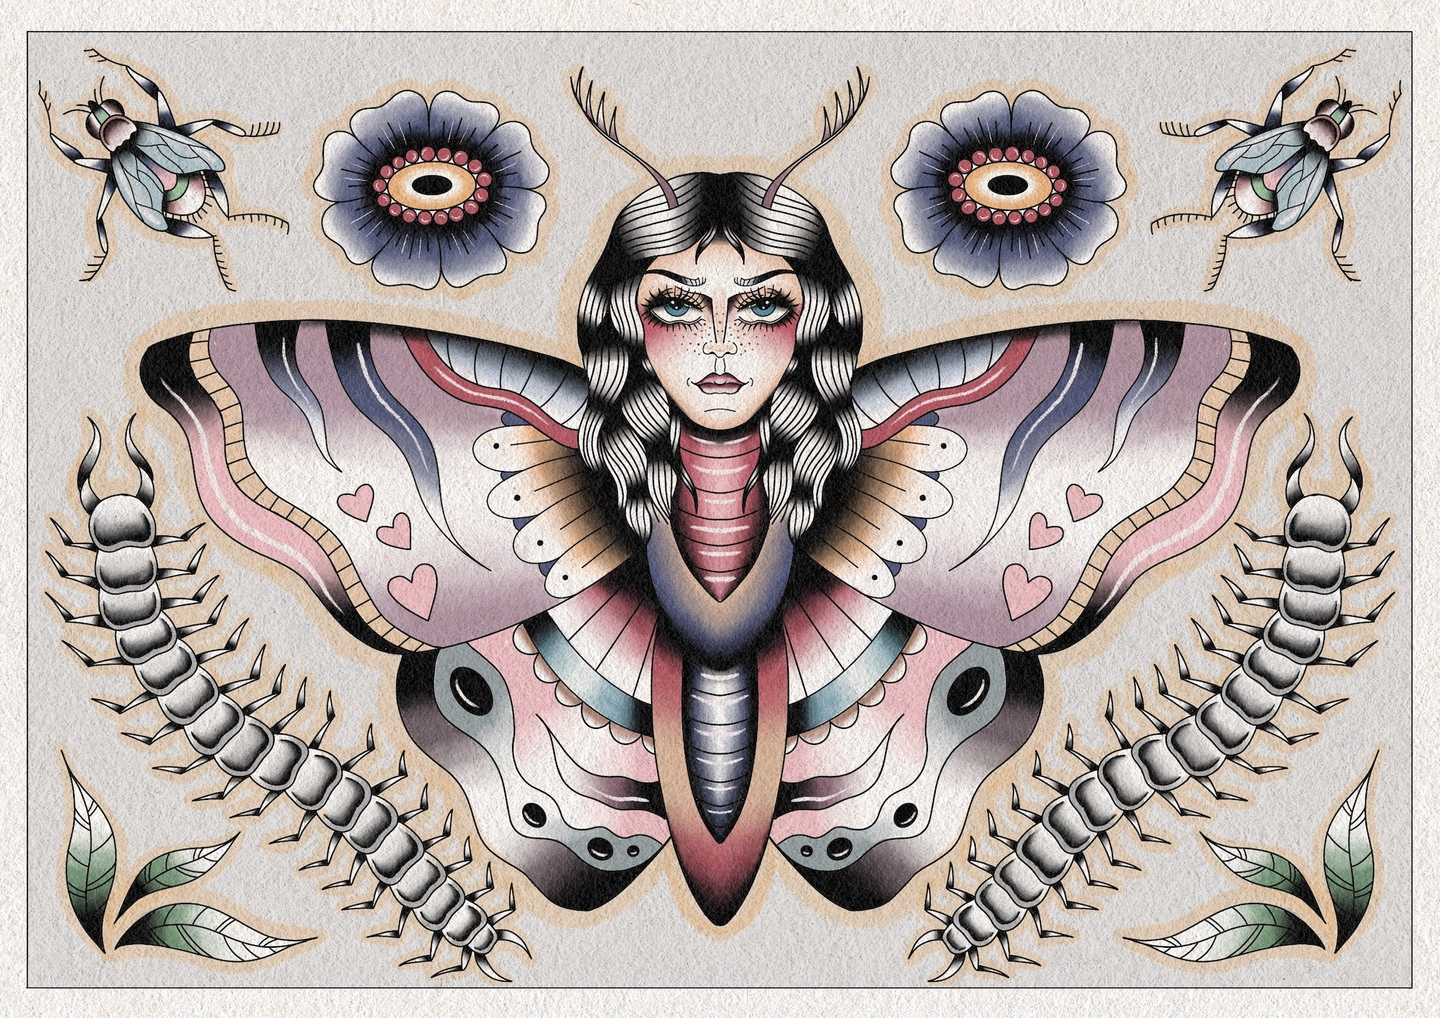 Work by Caitlan Hargreaves